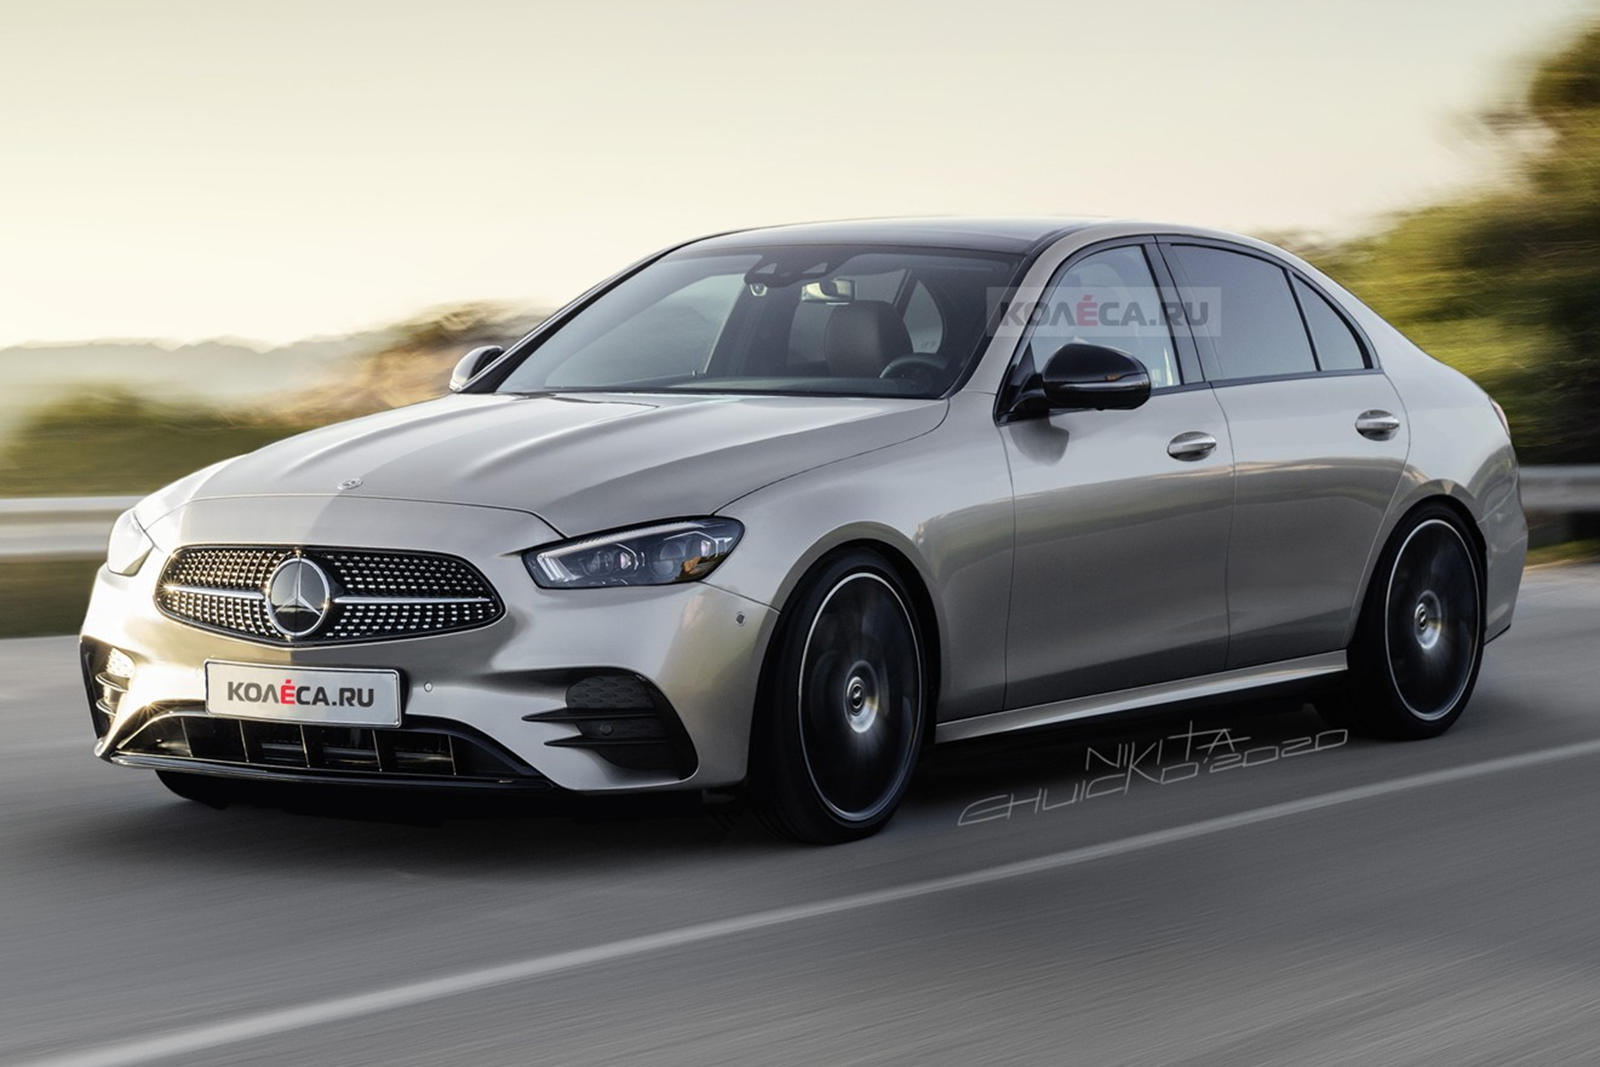 The New Mercedes C-Class Is Going To Look Hot